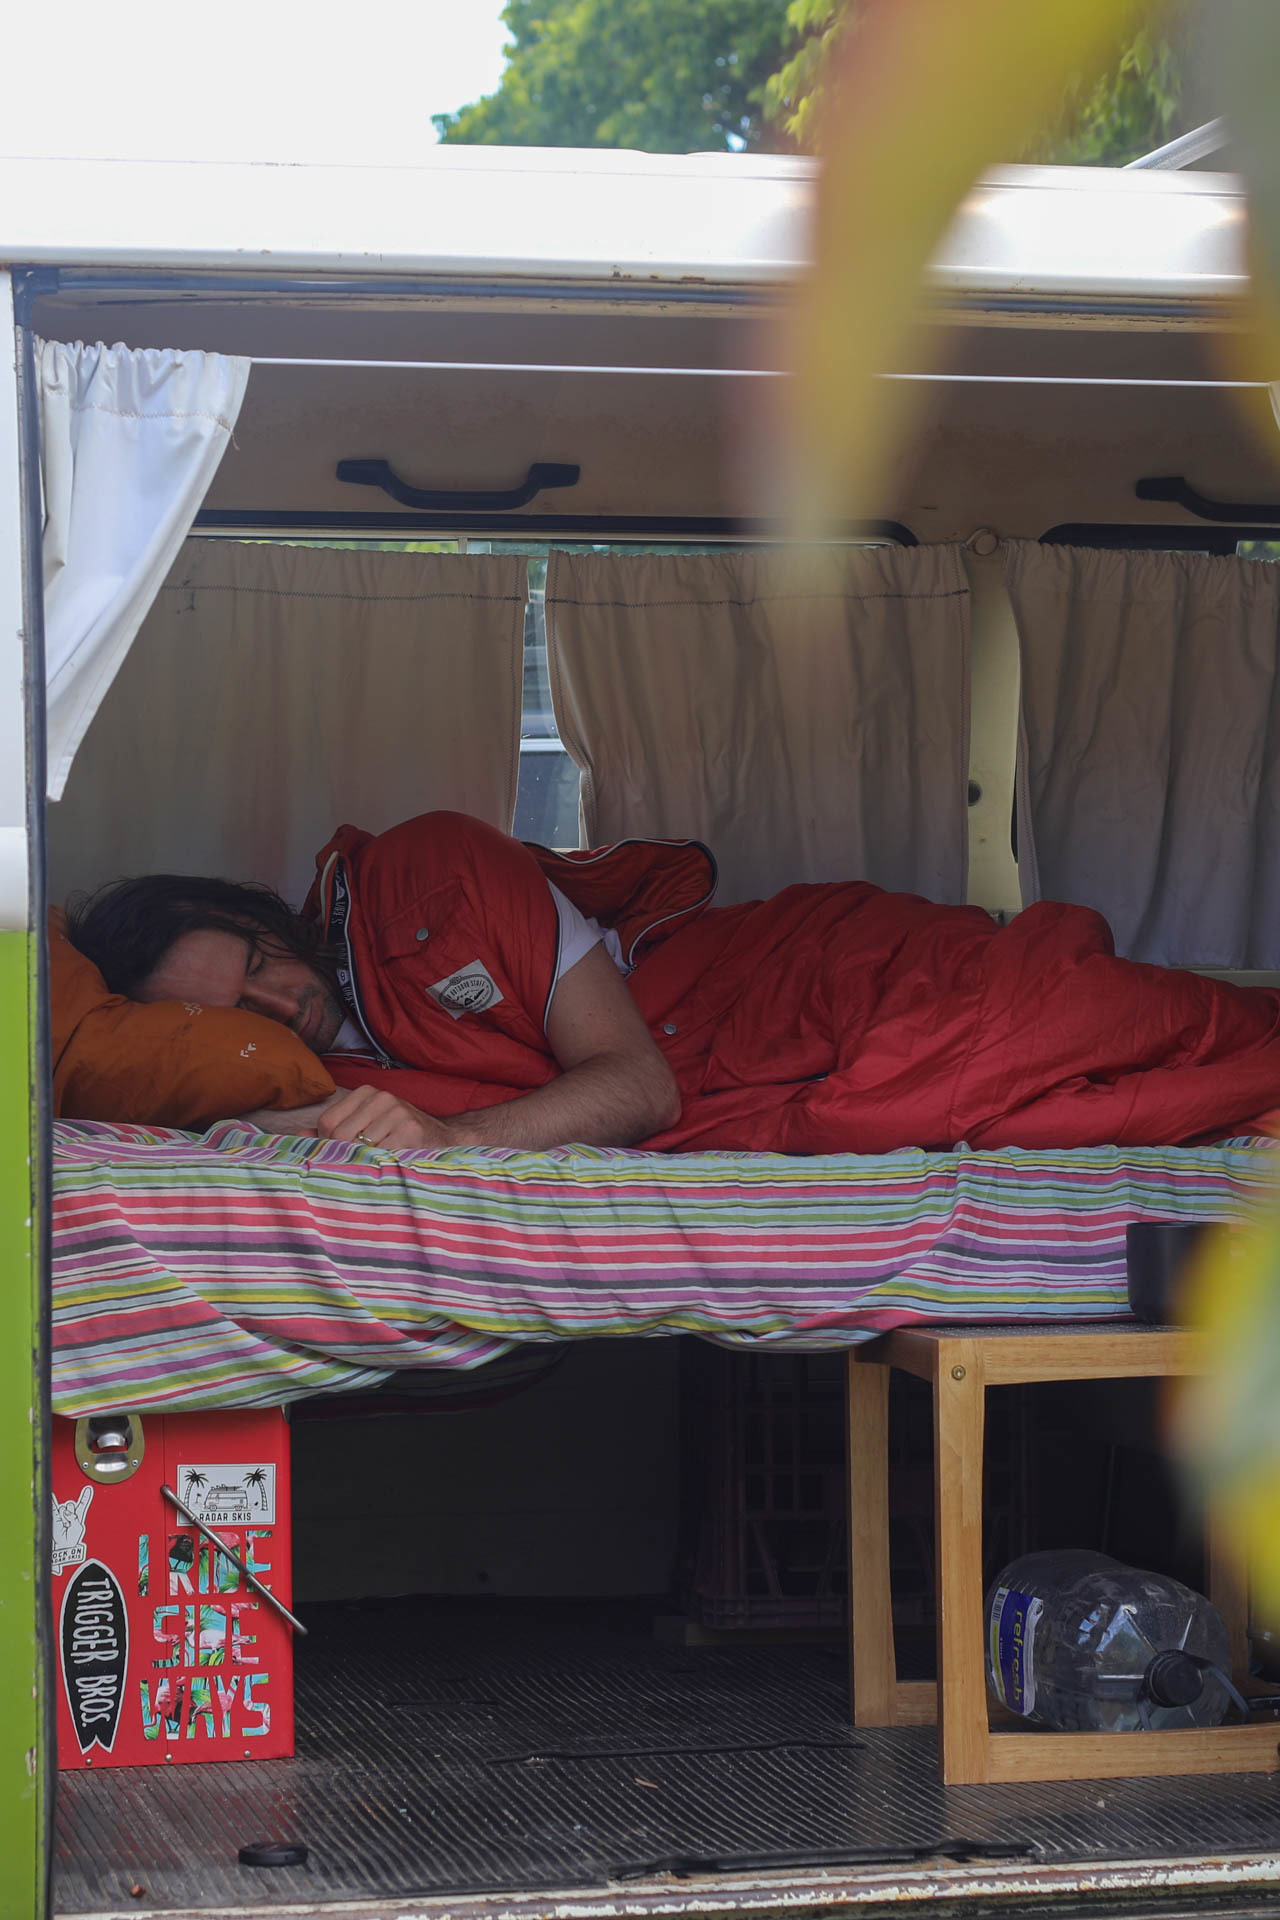 The Reversible Napsack by Poler // Gear Review, mattie gould, sleeping bag, jacket, who knows,, kombi, van